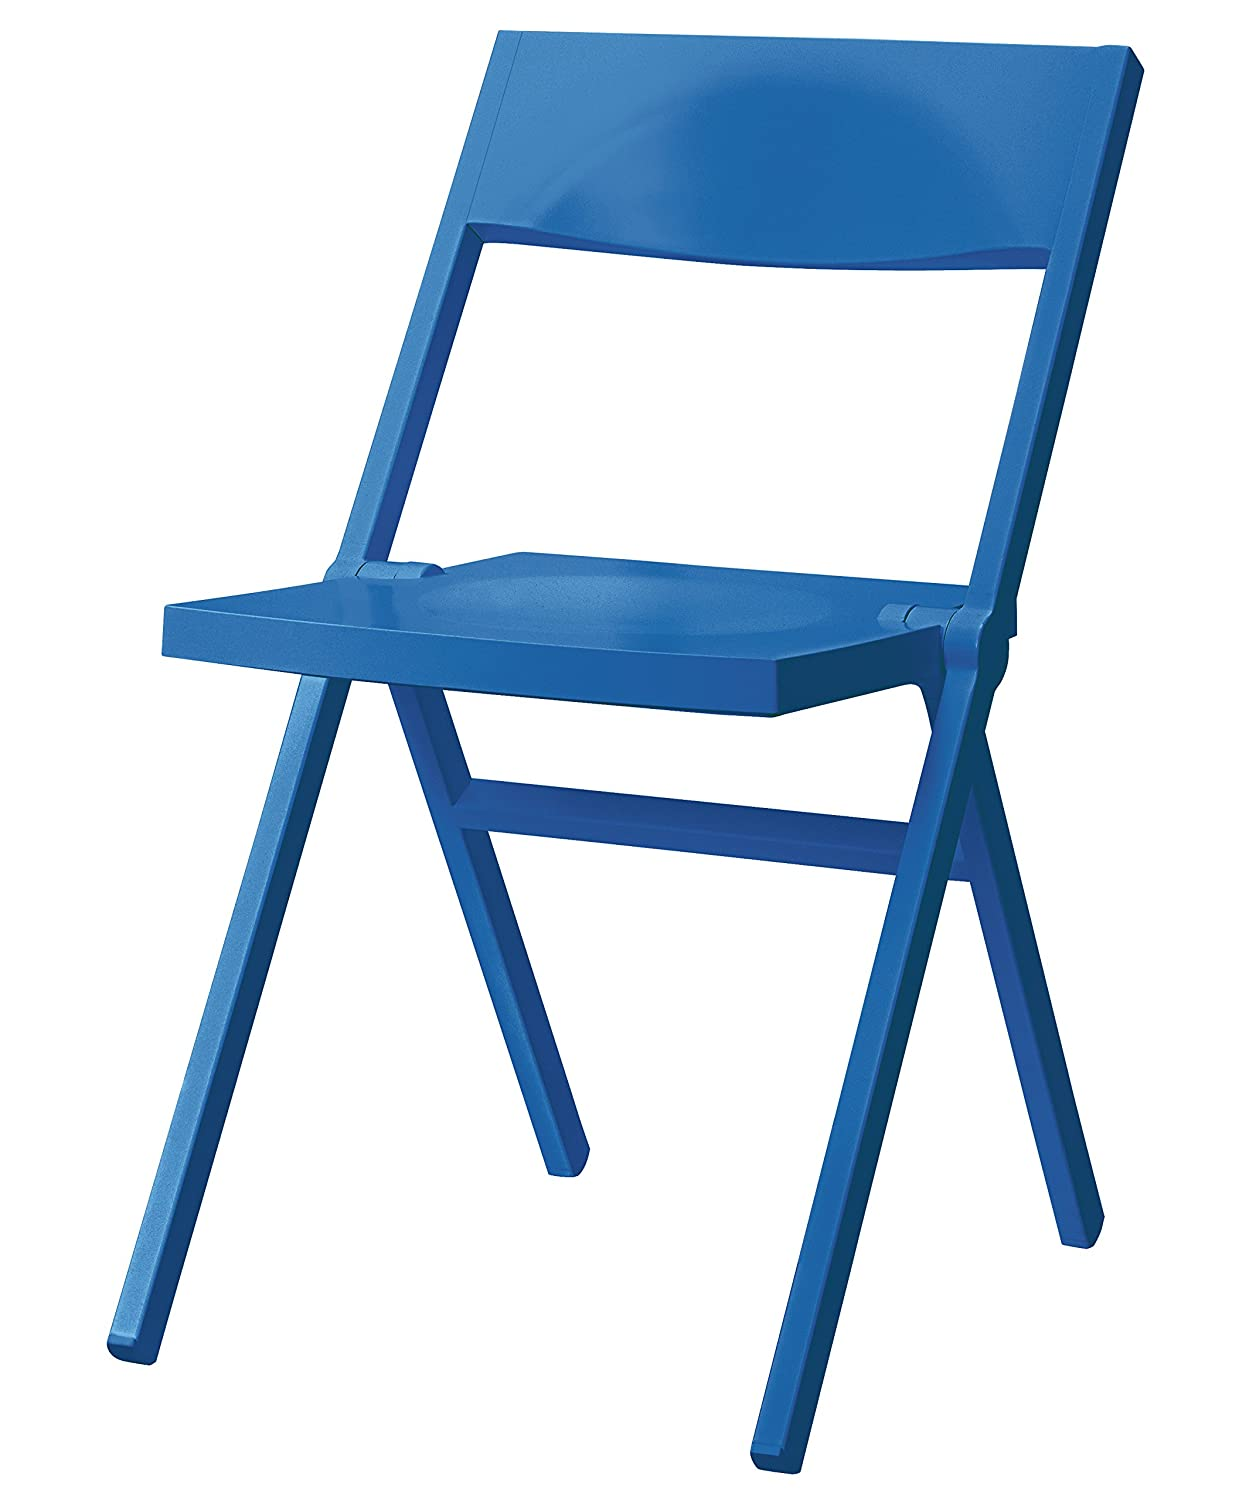 Blue Alessi Folding and Stackable Chair in PP and Fiberglass 52 x 46 x 90 cm